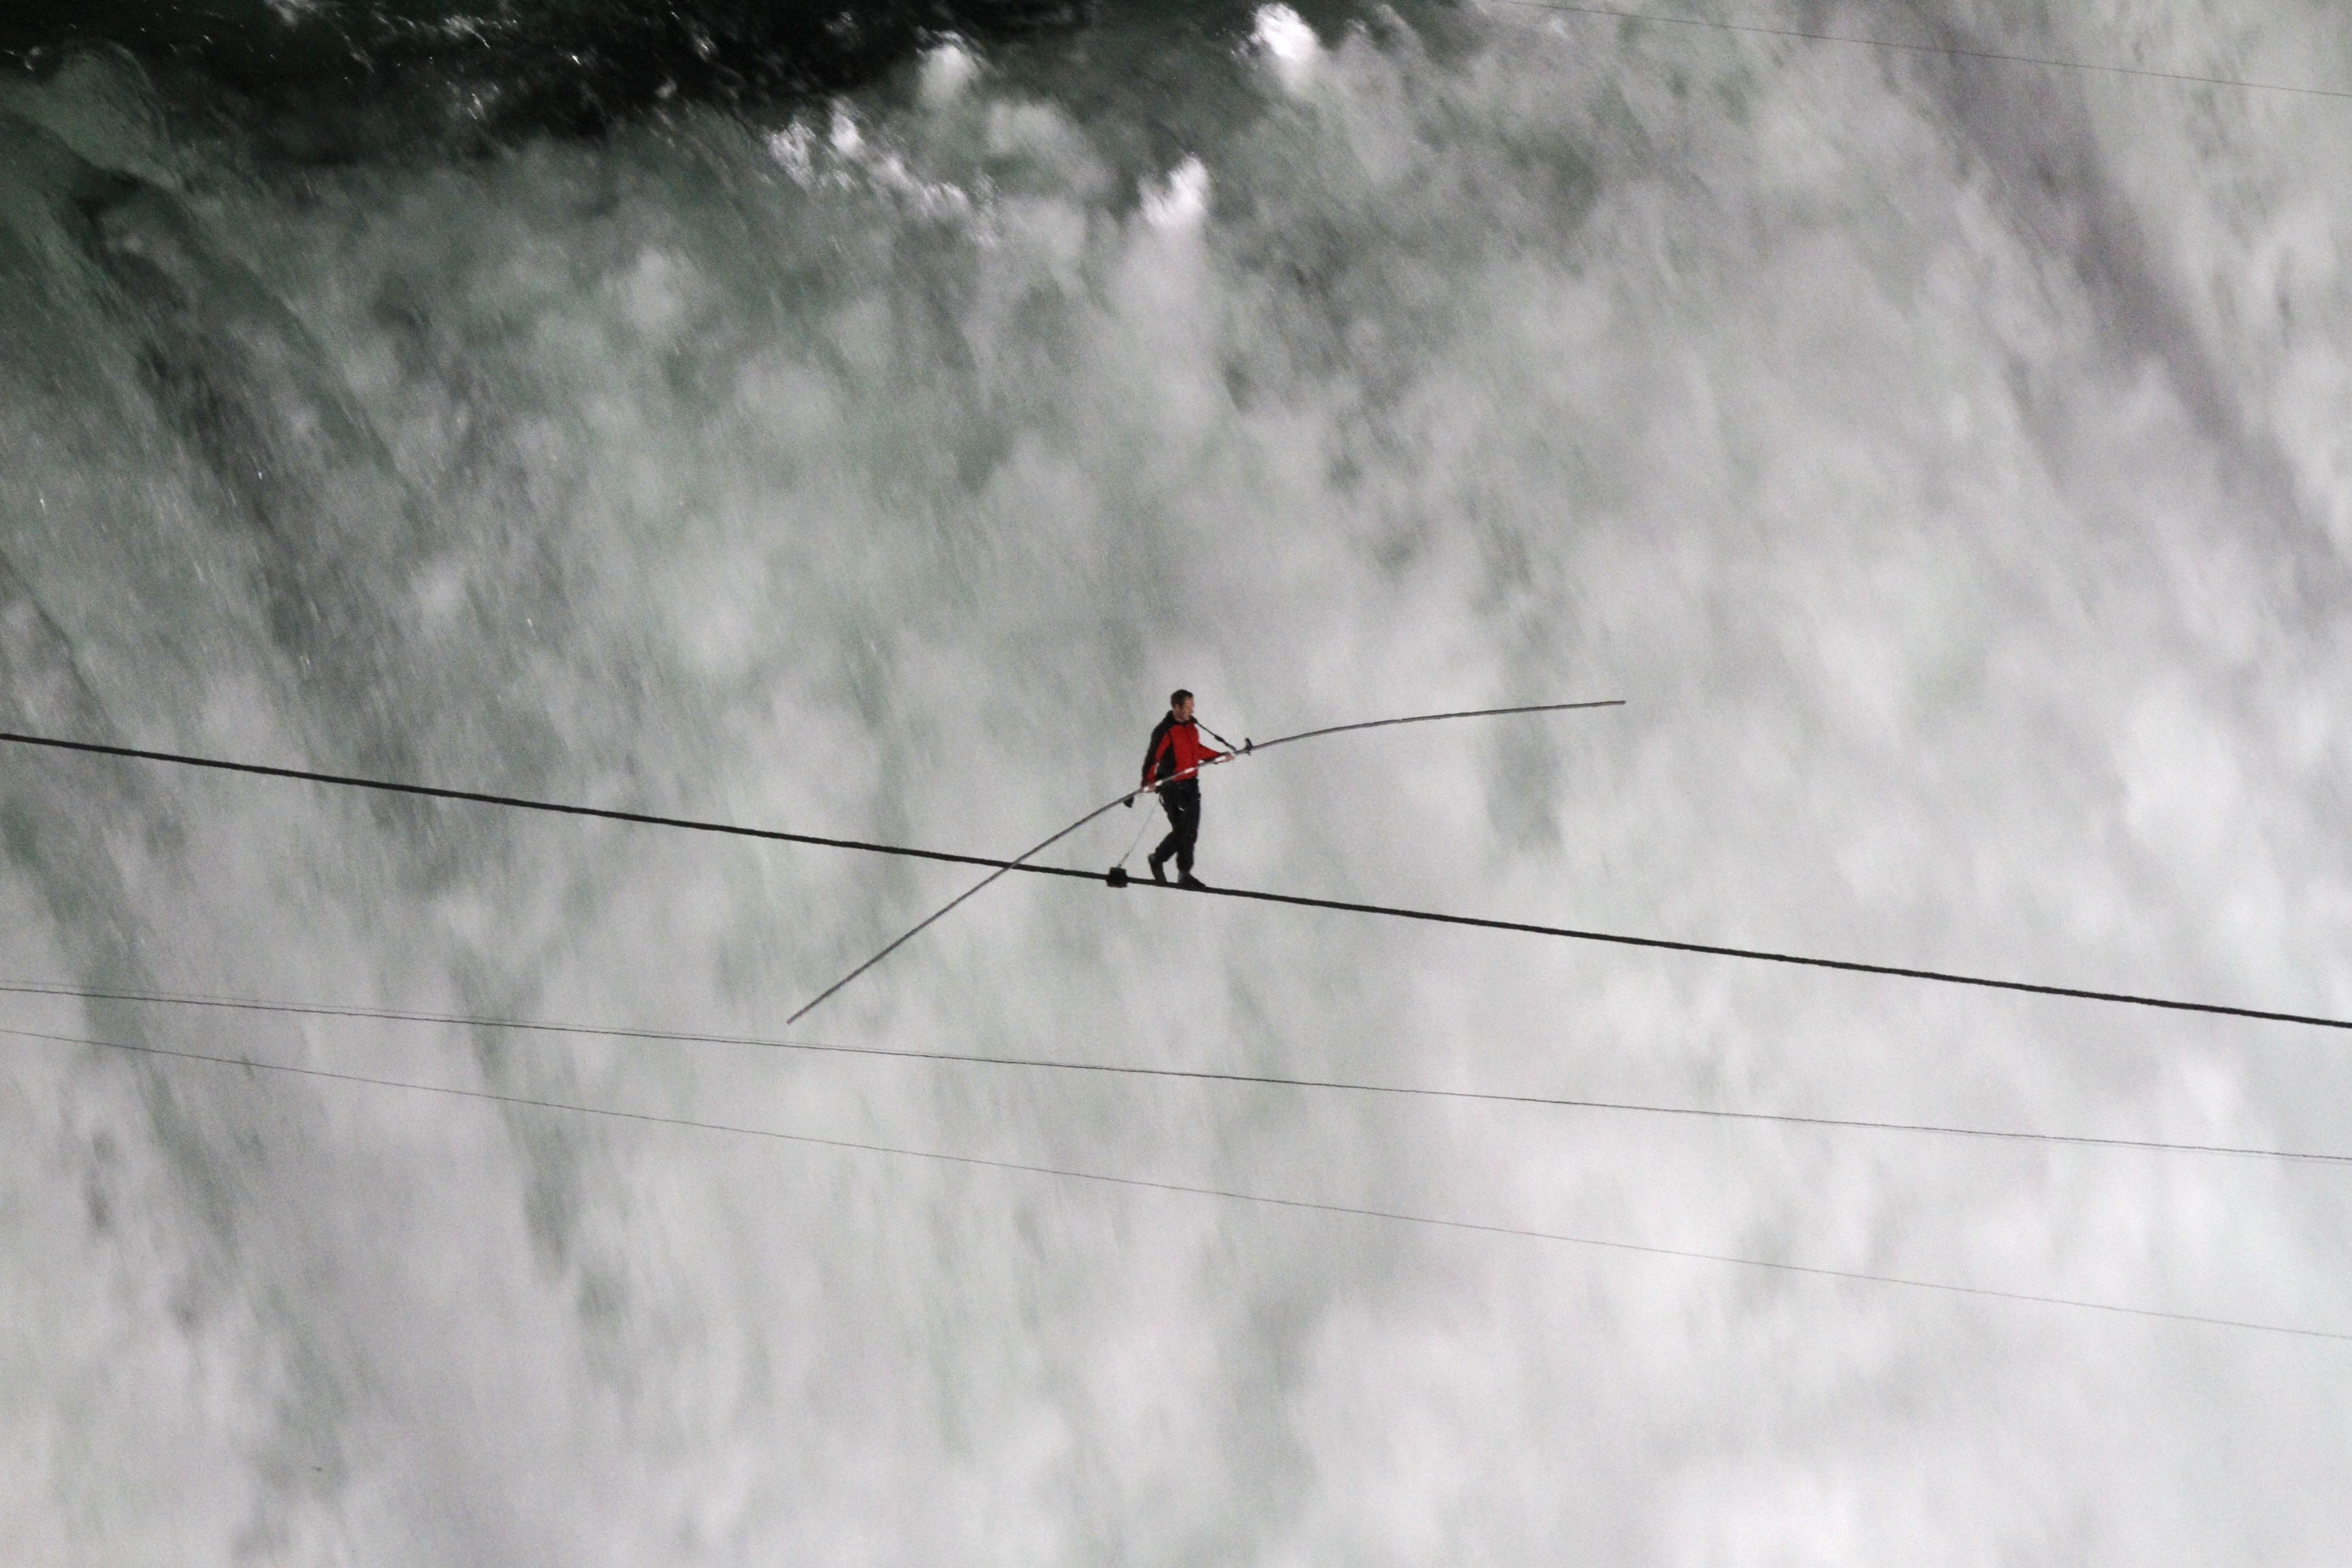 News Chief Photographer Derek Gee won best photo in the news photography category for news photo of Nick Wallenda's historic tight-rope walk over Niagara Falls.